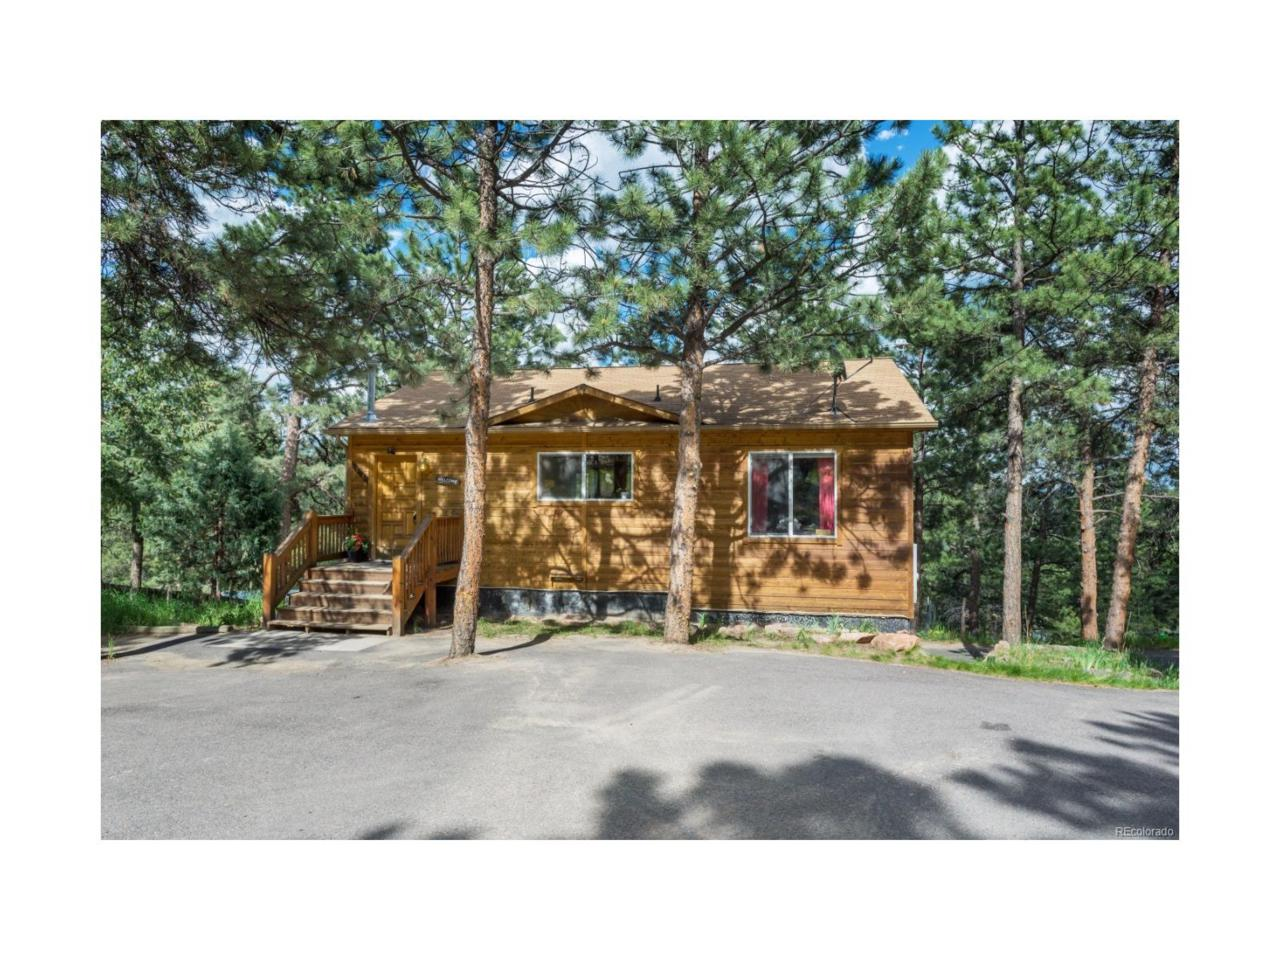 84 S Laura Avenue, Pine, CO 80470 (MLS #3472581) :: 8z Real Estate